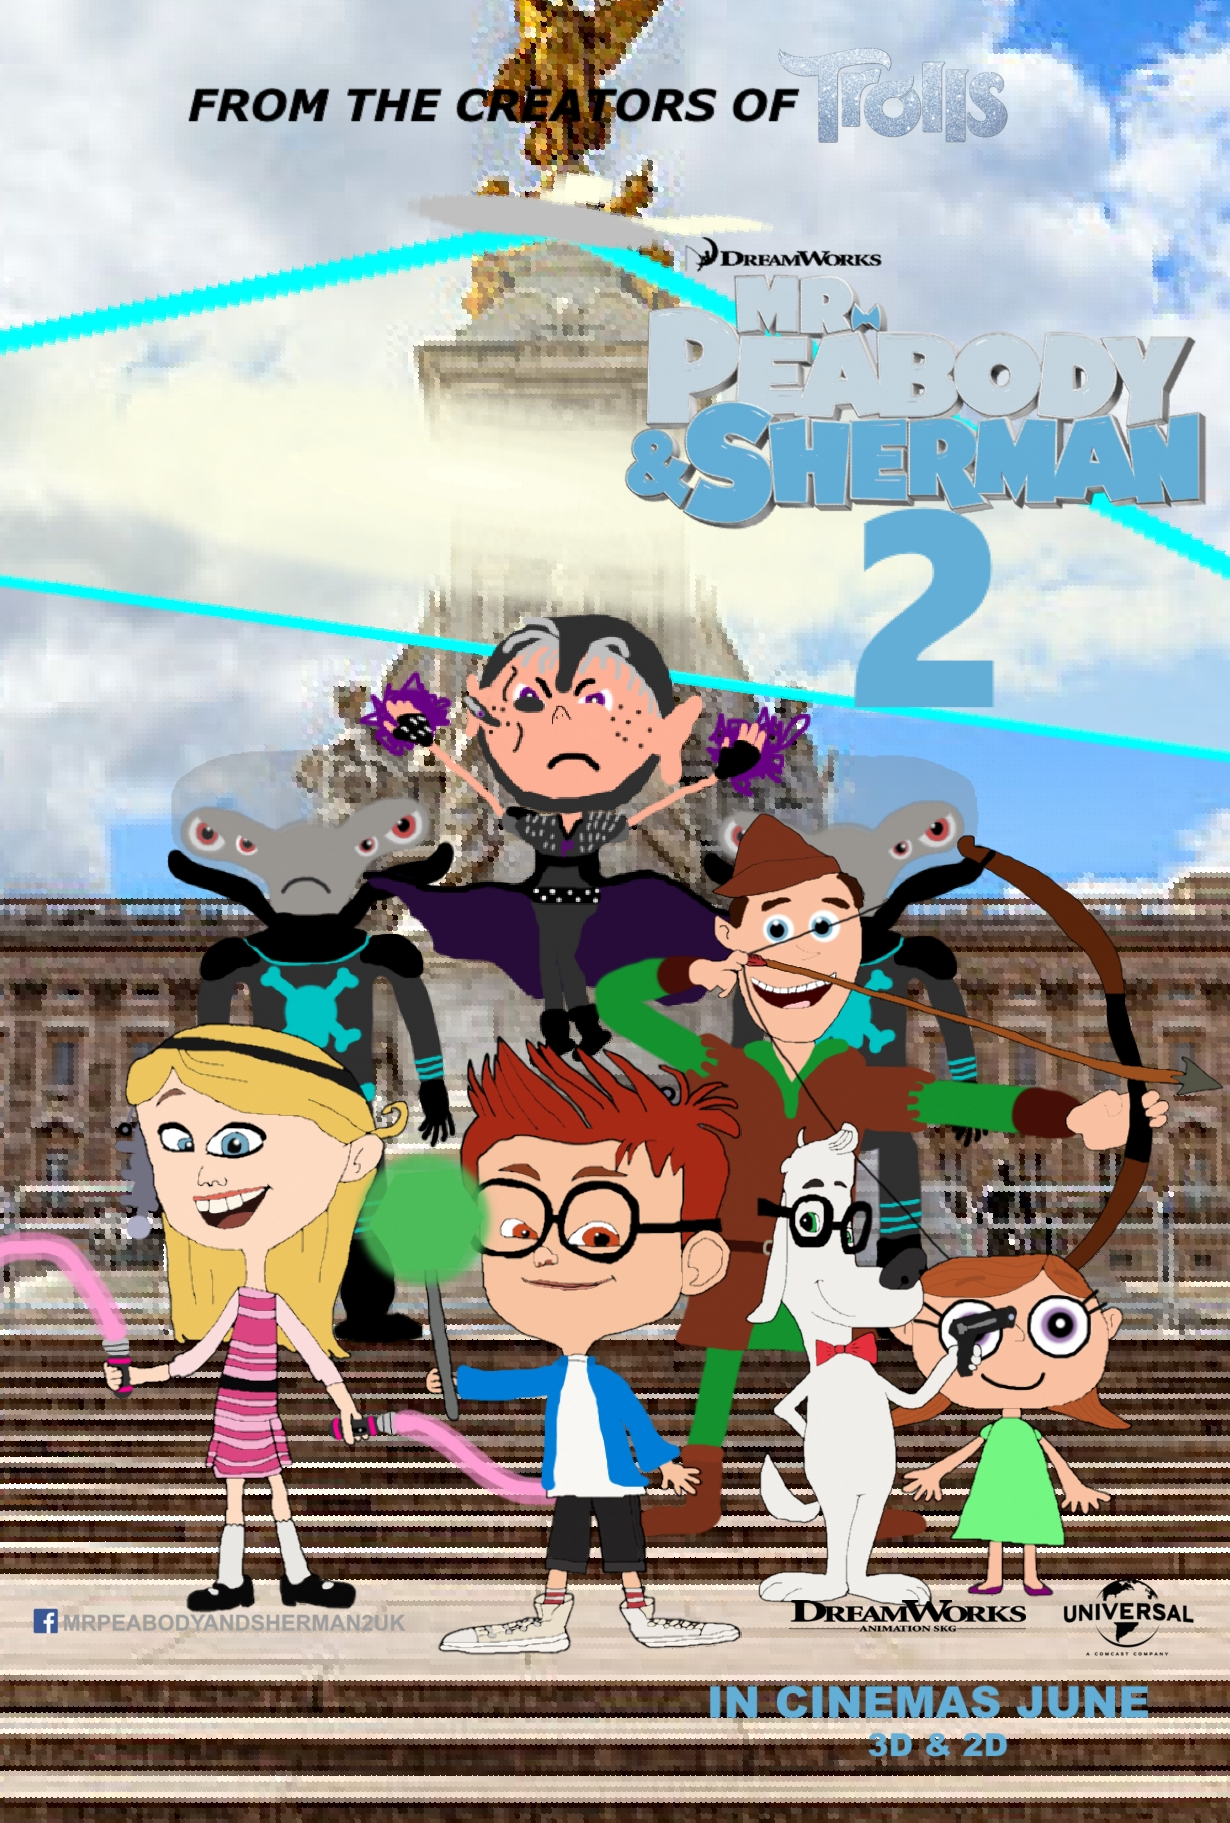 Mr Peabody And Sherman 2 2017 Idea Wiki Fandom